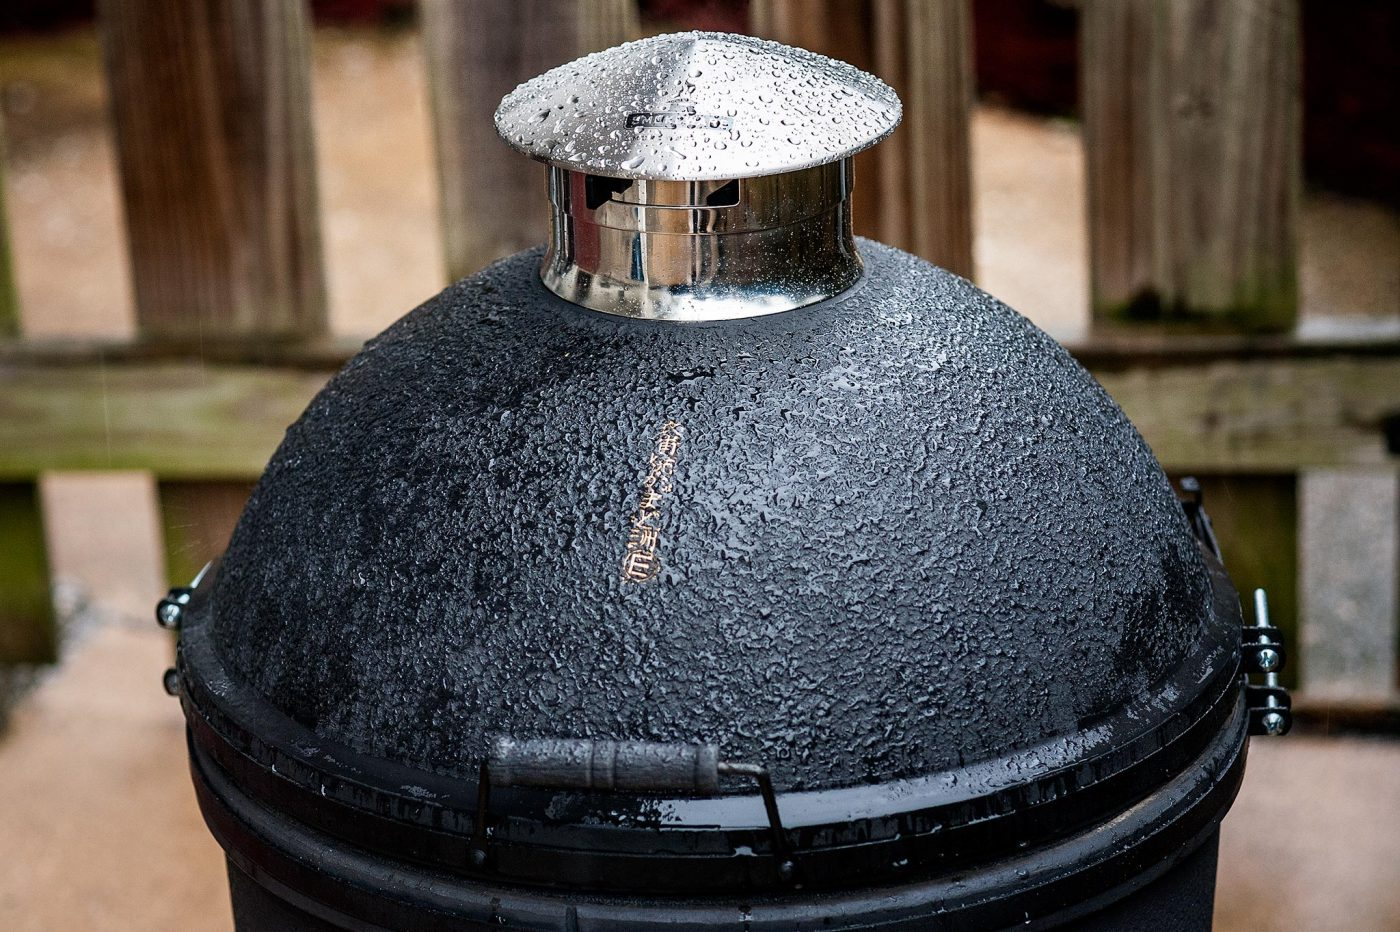 The Restoration of an Antique Kamado by Kinuura Yaki Pottery of Japan. With Smokeware Chimney Cap in the rain